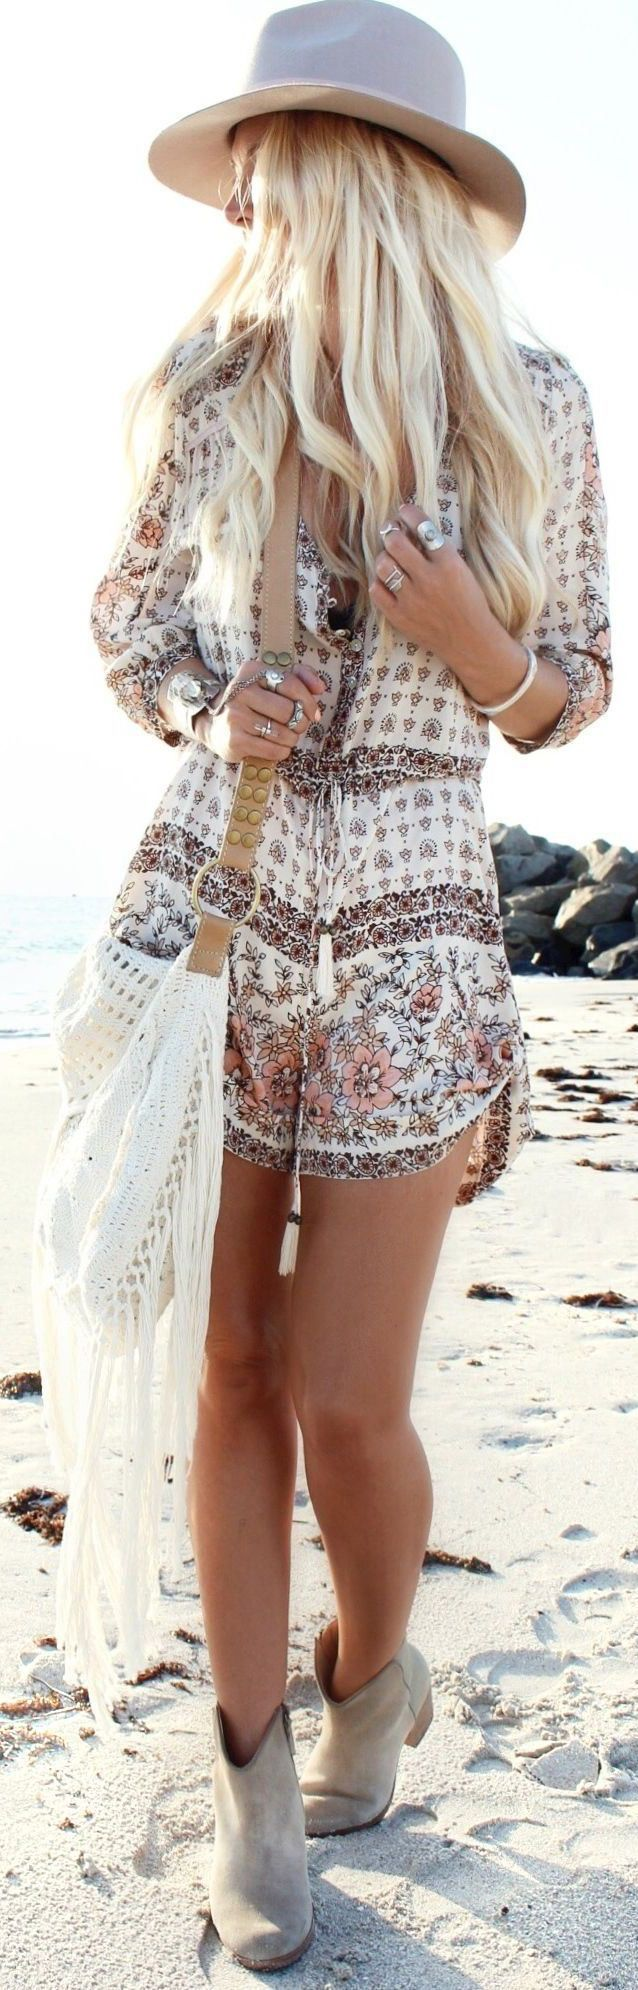 9be3c49d9f9 25 Summer Beach Outfits 2019 - Beach Outfit Ideas for Women